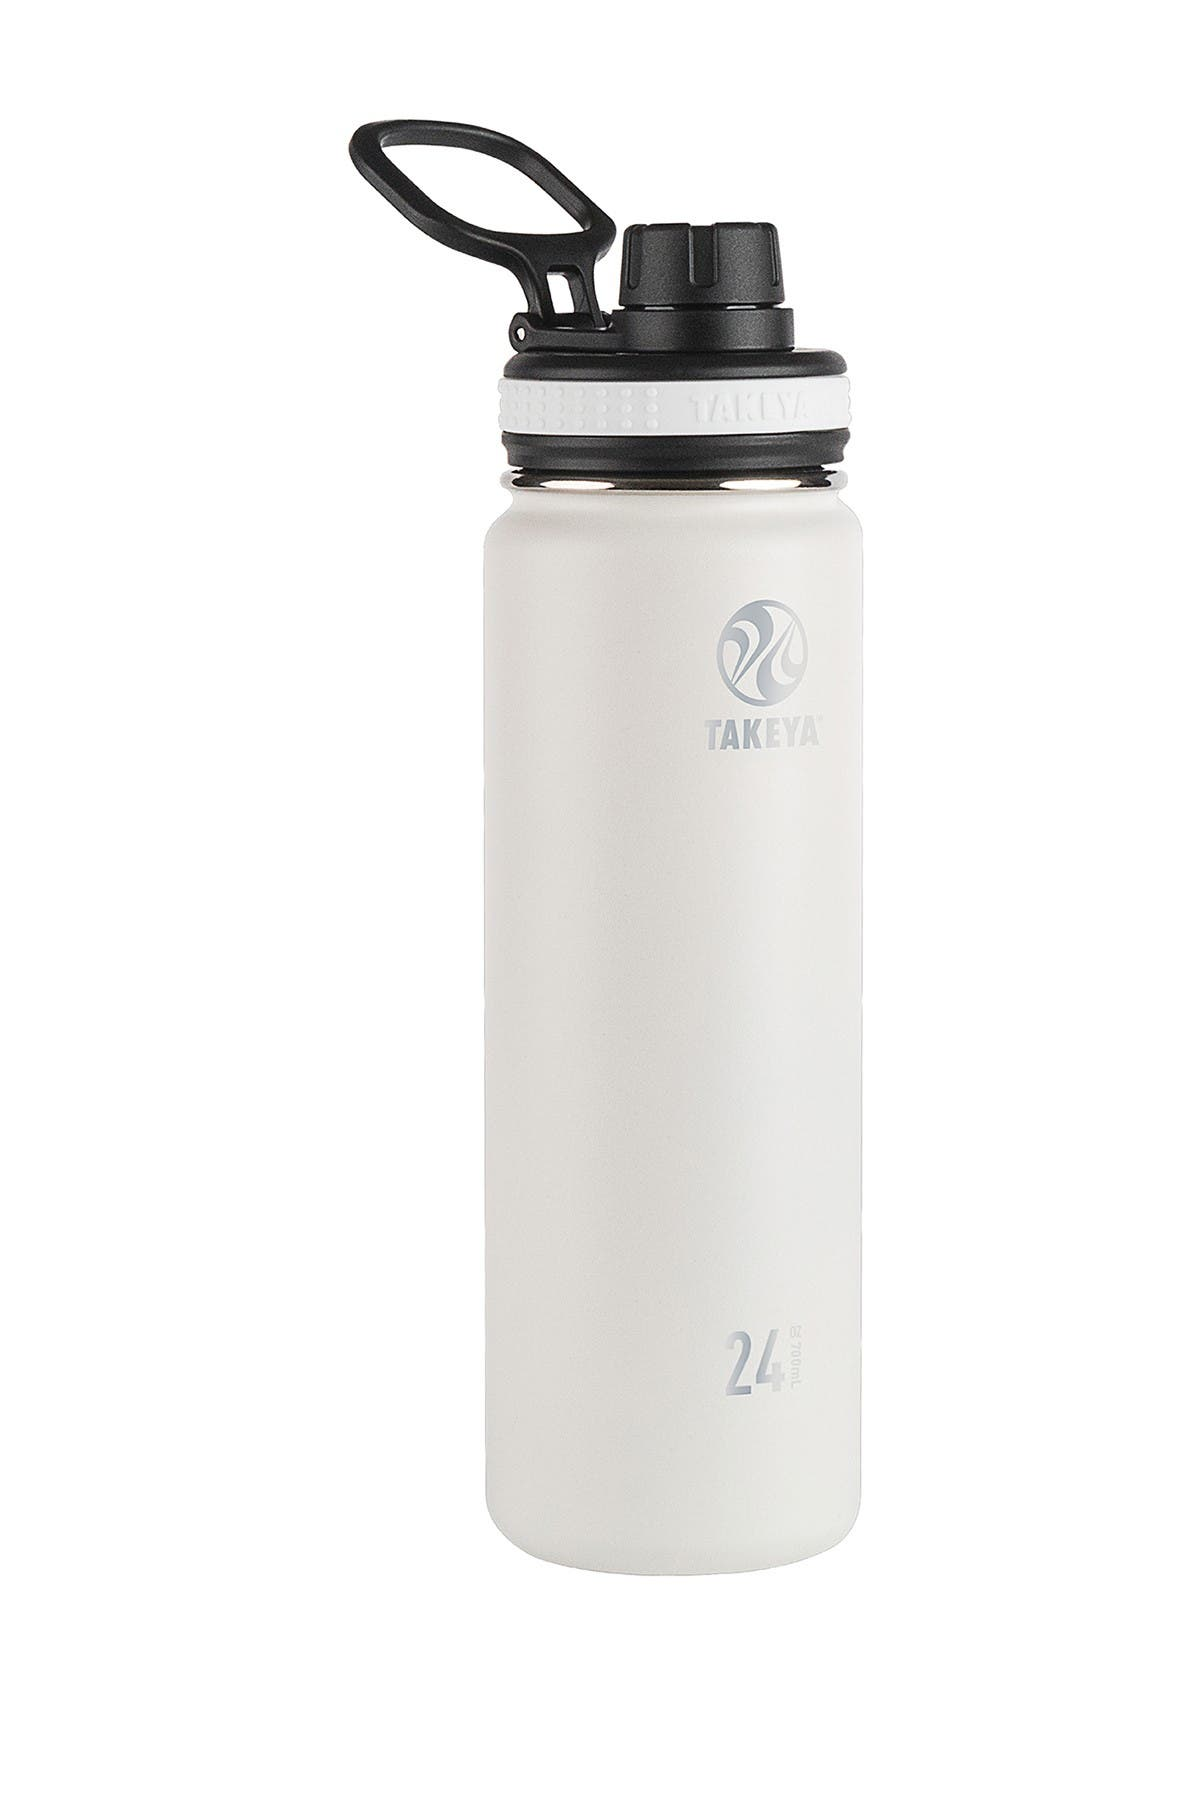 Image of Takeya White Originals Insulated Spout Lid 24oz. Stainless Steel Bottle